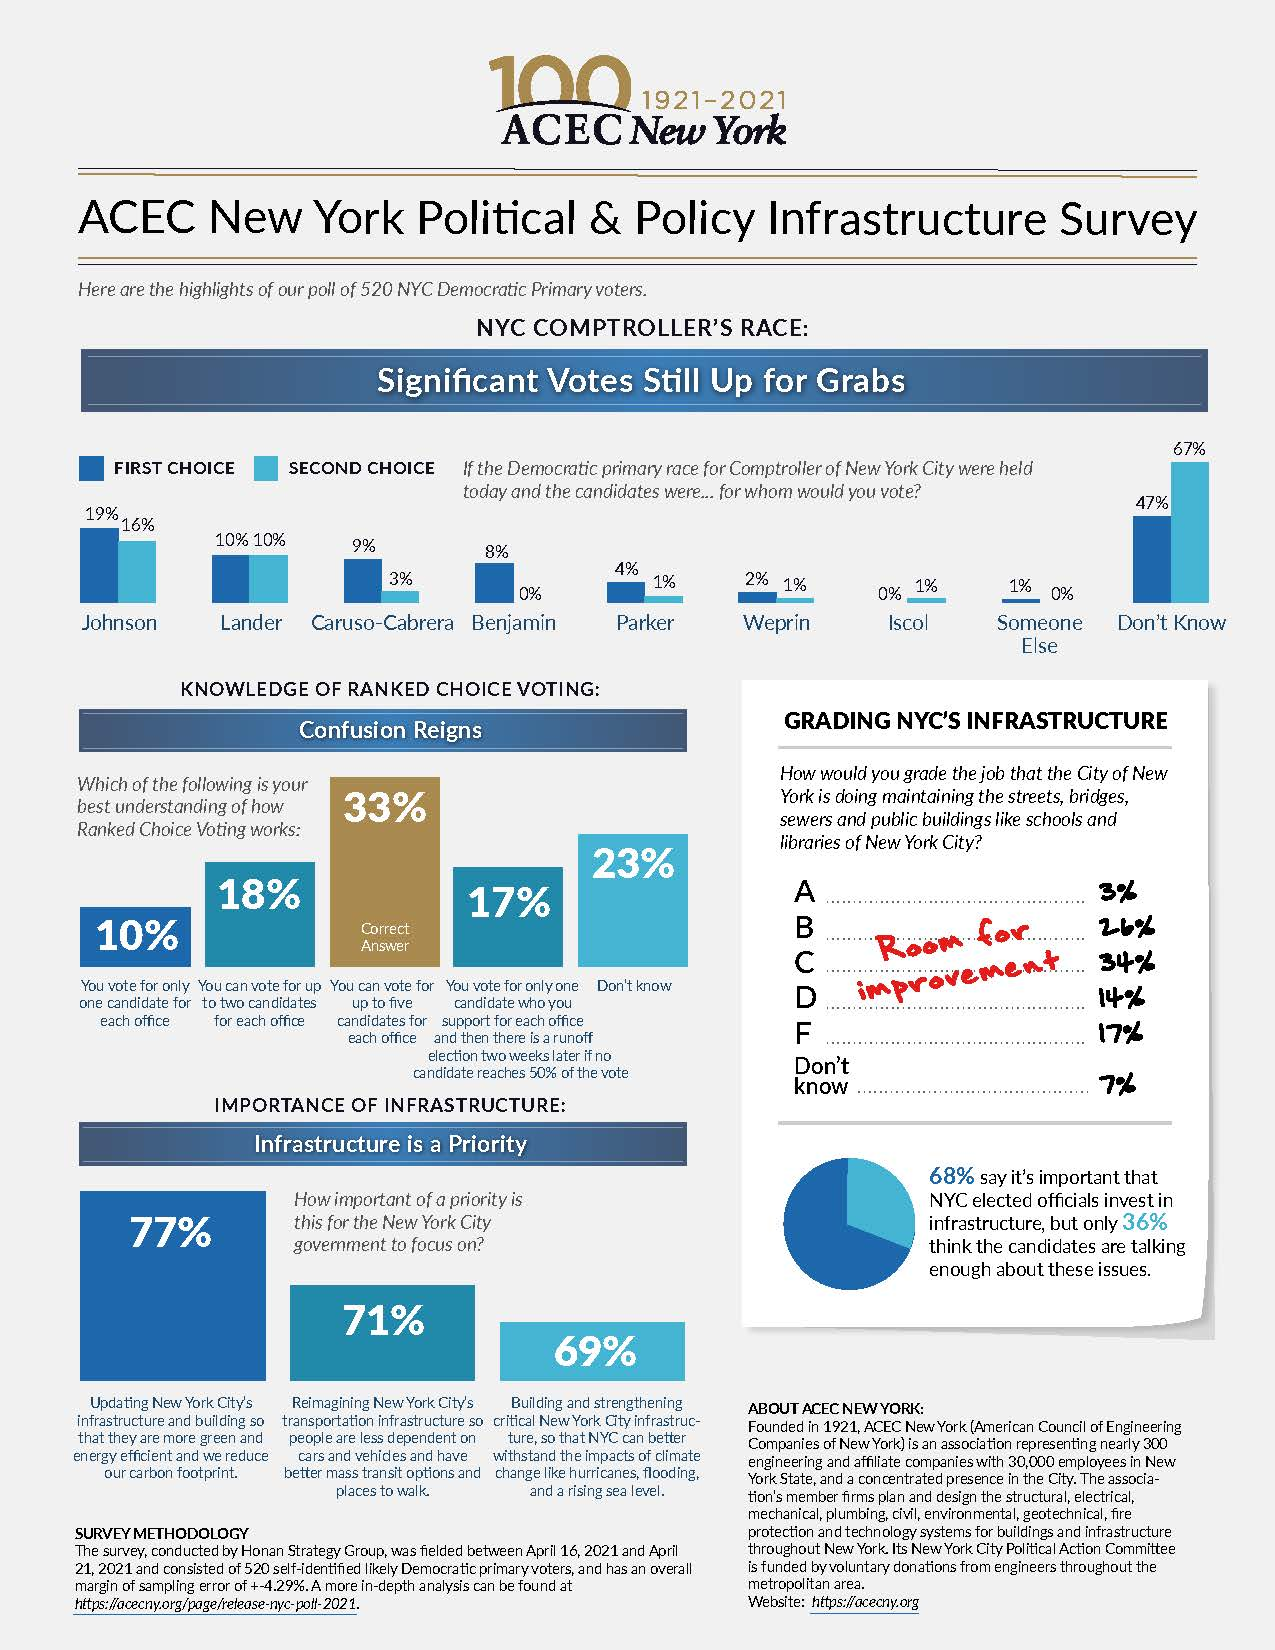 ACEC New York Political & Policy Infrastructure Survey